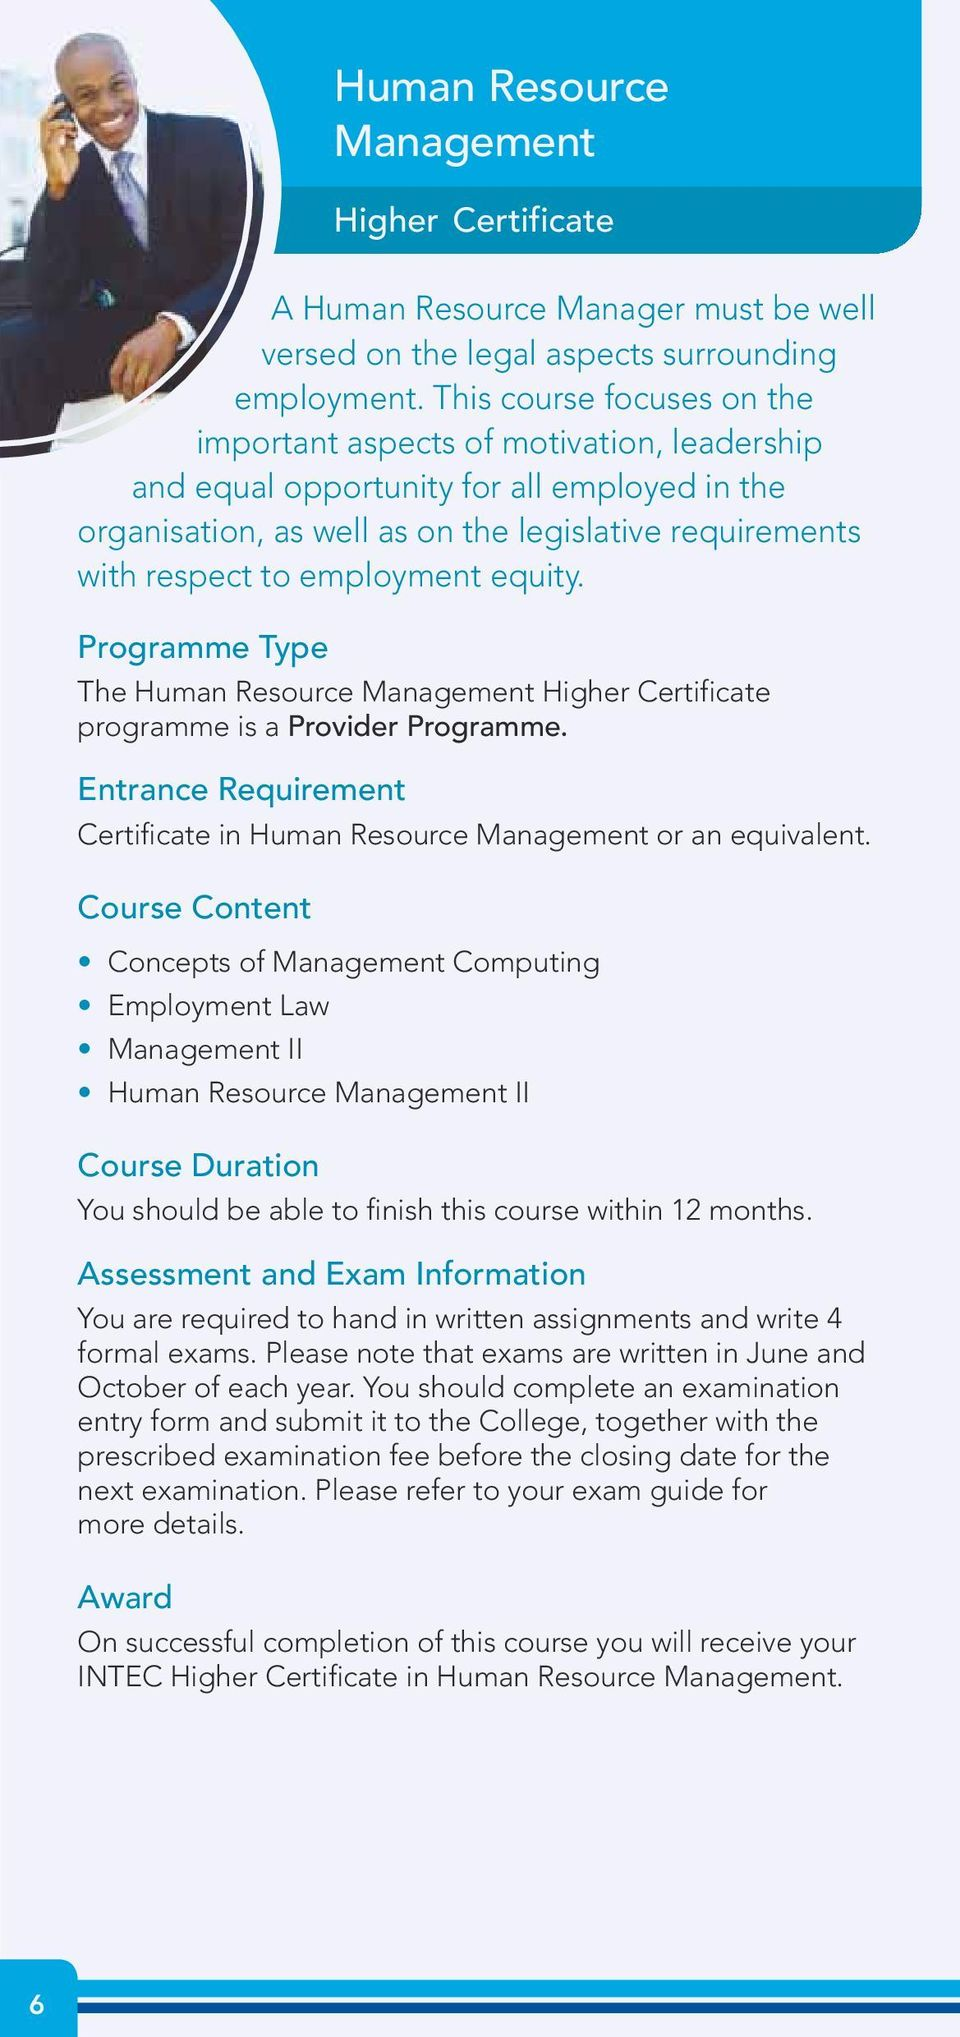 employment equity. The Human Resource Management Higher Certificate programme is a Provider Programme. Entrance Requirement Certificate in Human Resource Management or an equivalent.